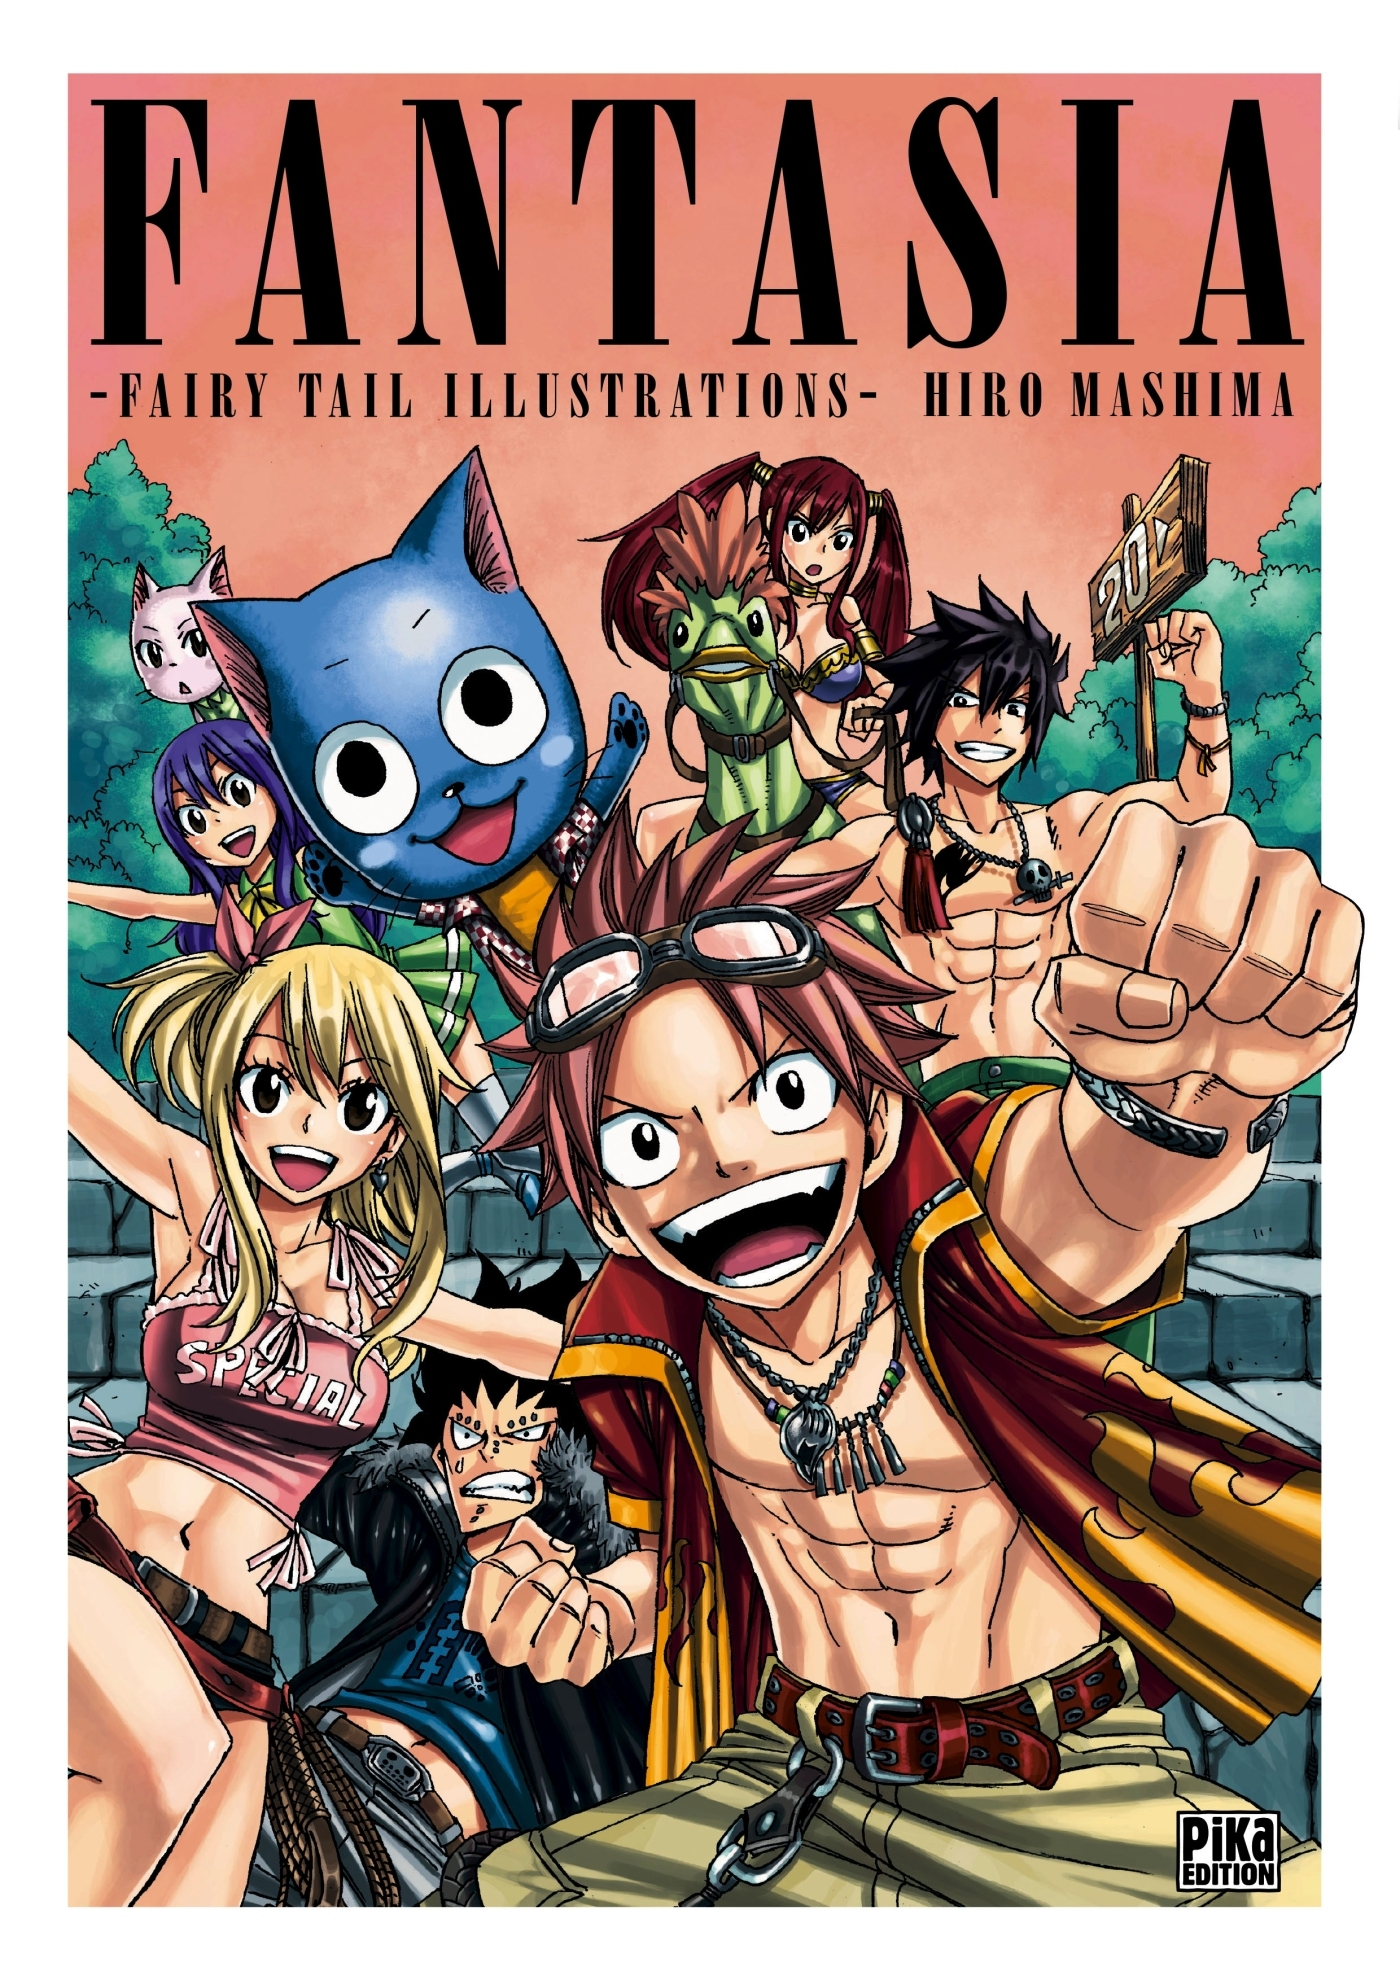 FAIRY TAIL - FANTASIA